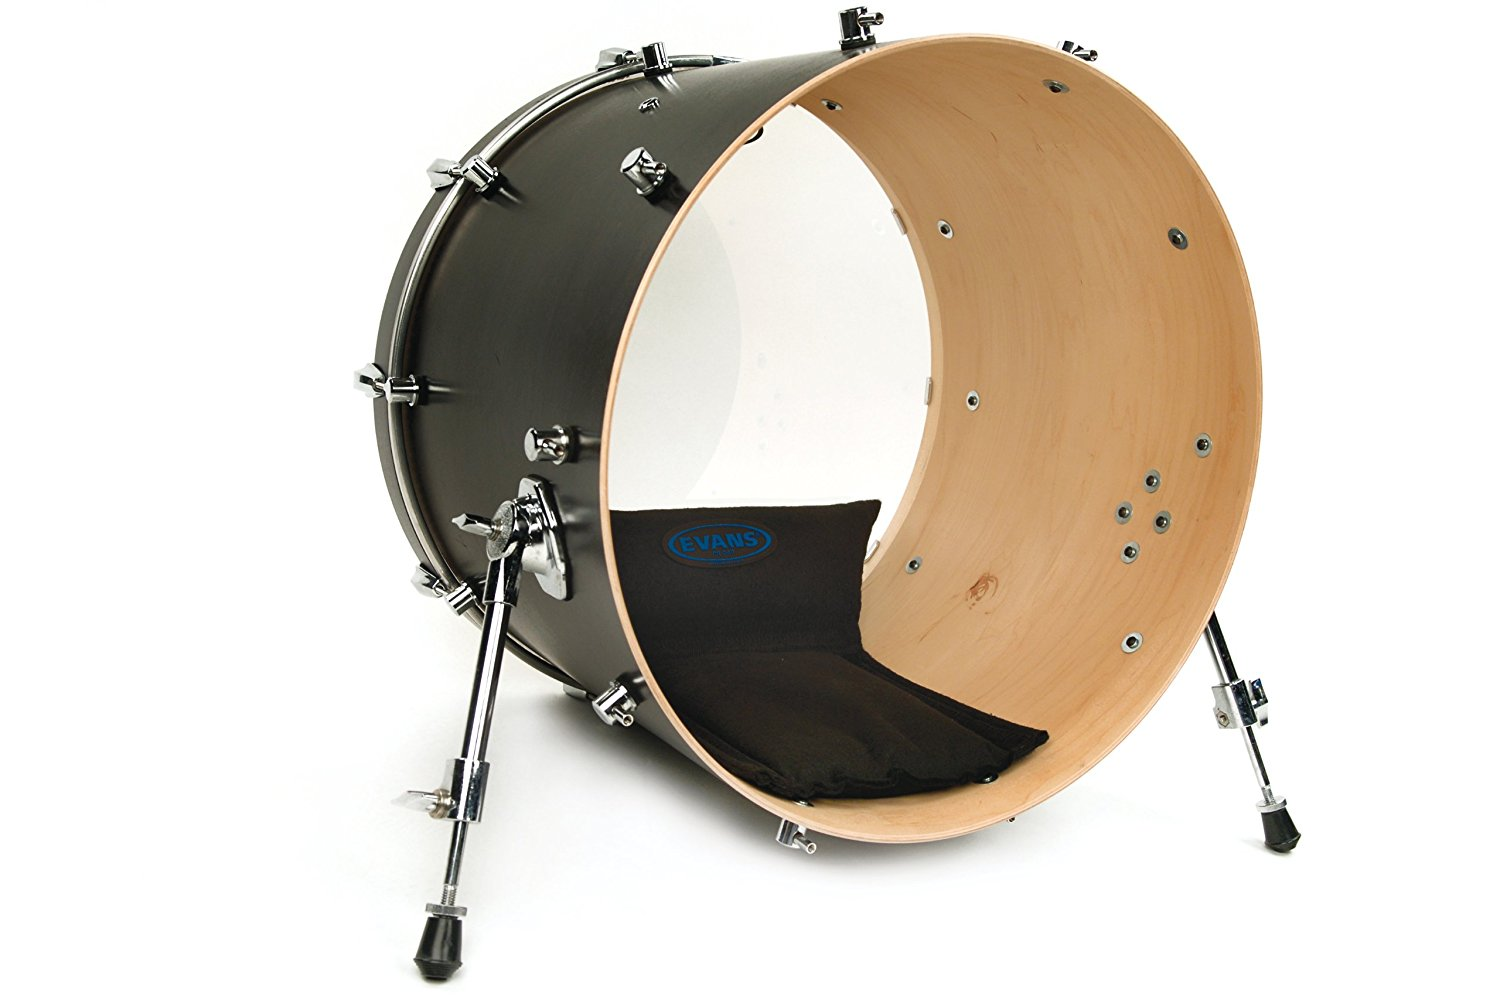 evans eq bass drum damper pad review drumhead authority. Black Bedroom Furniture Sets. Home Design Ideas